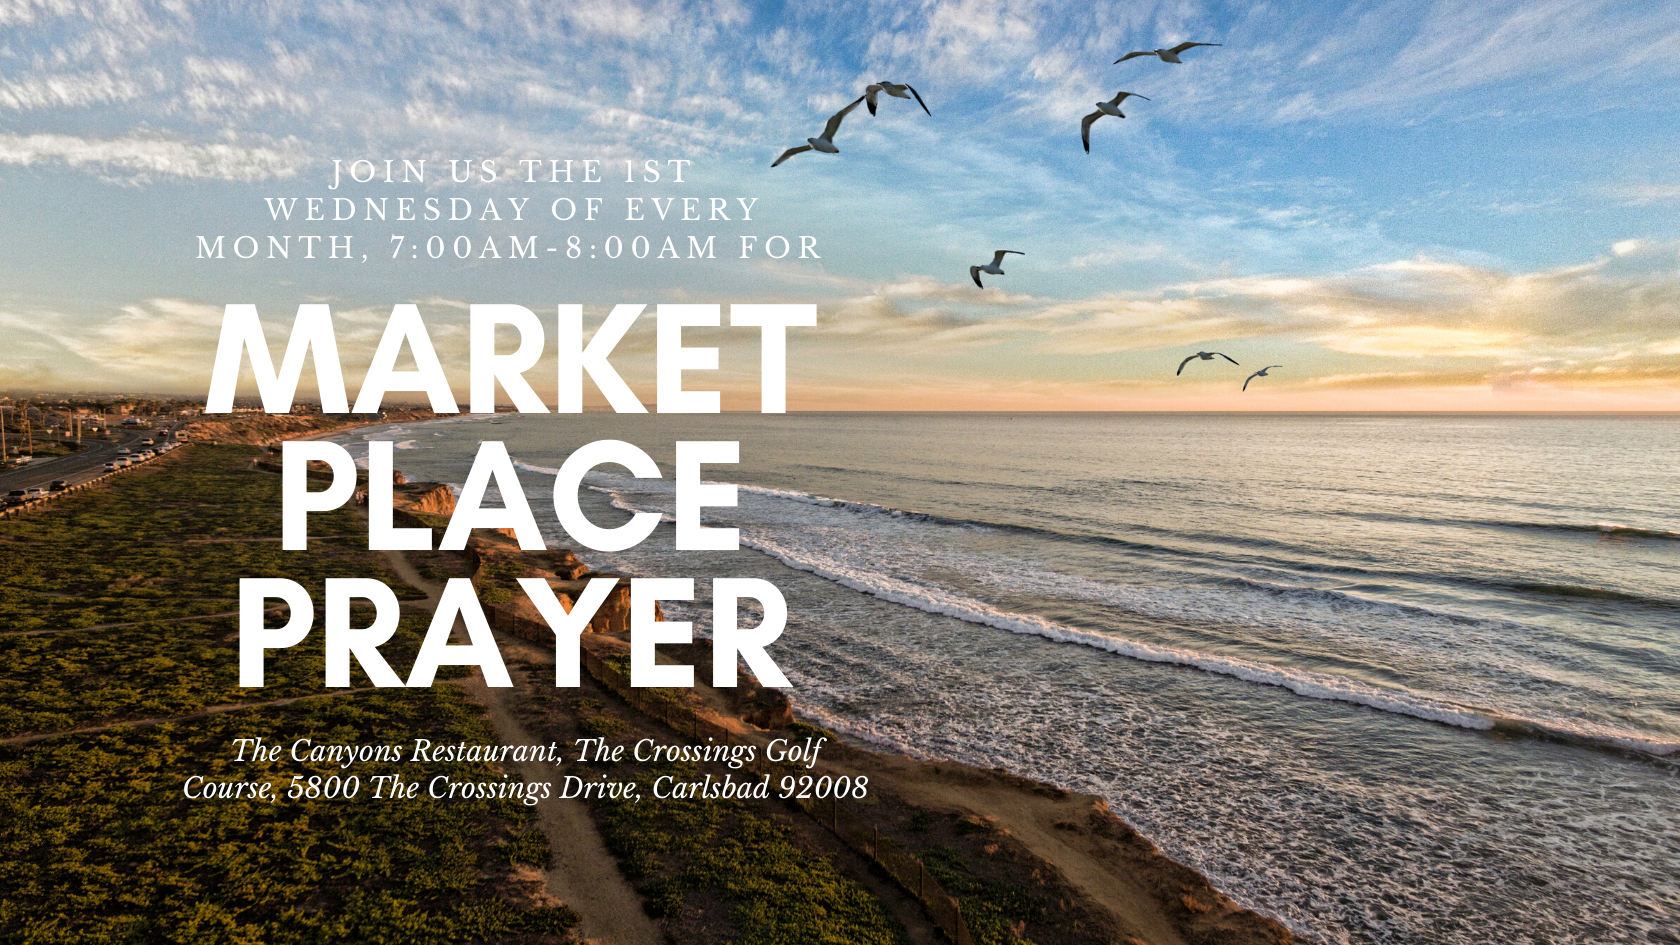 Market place prayer.png